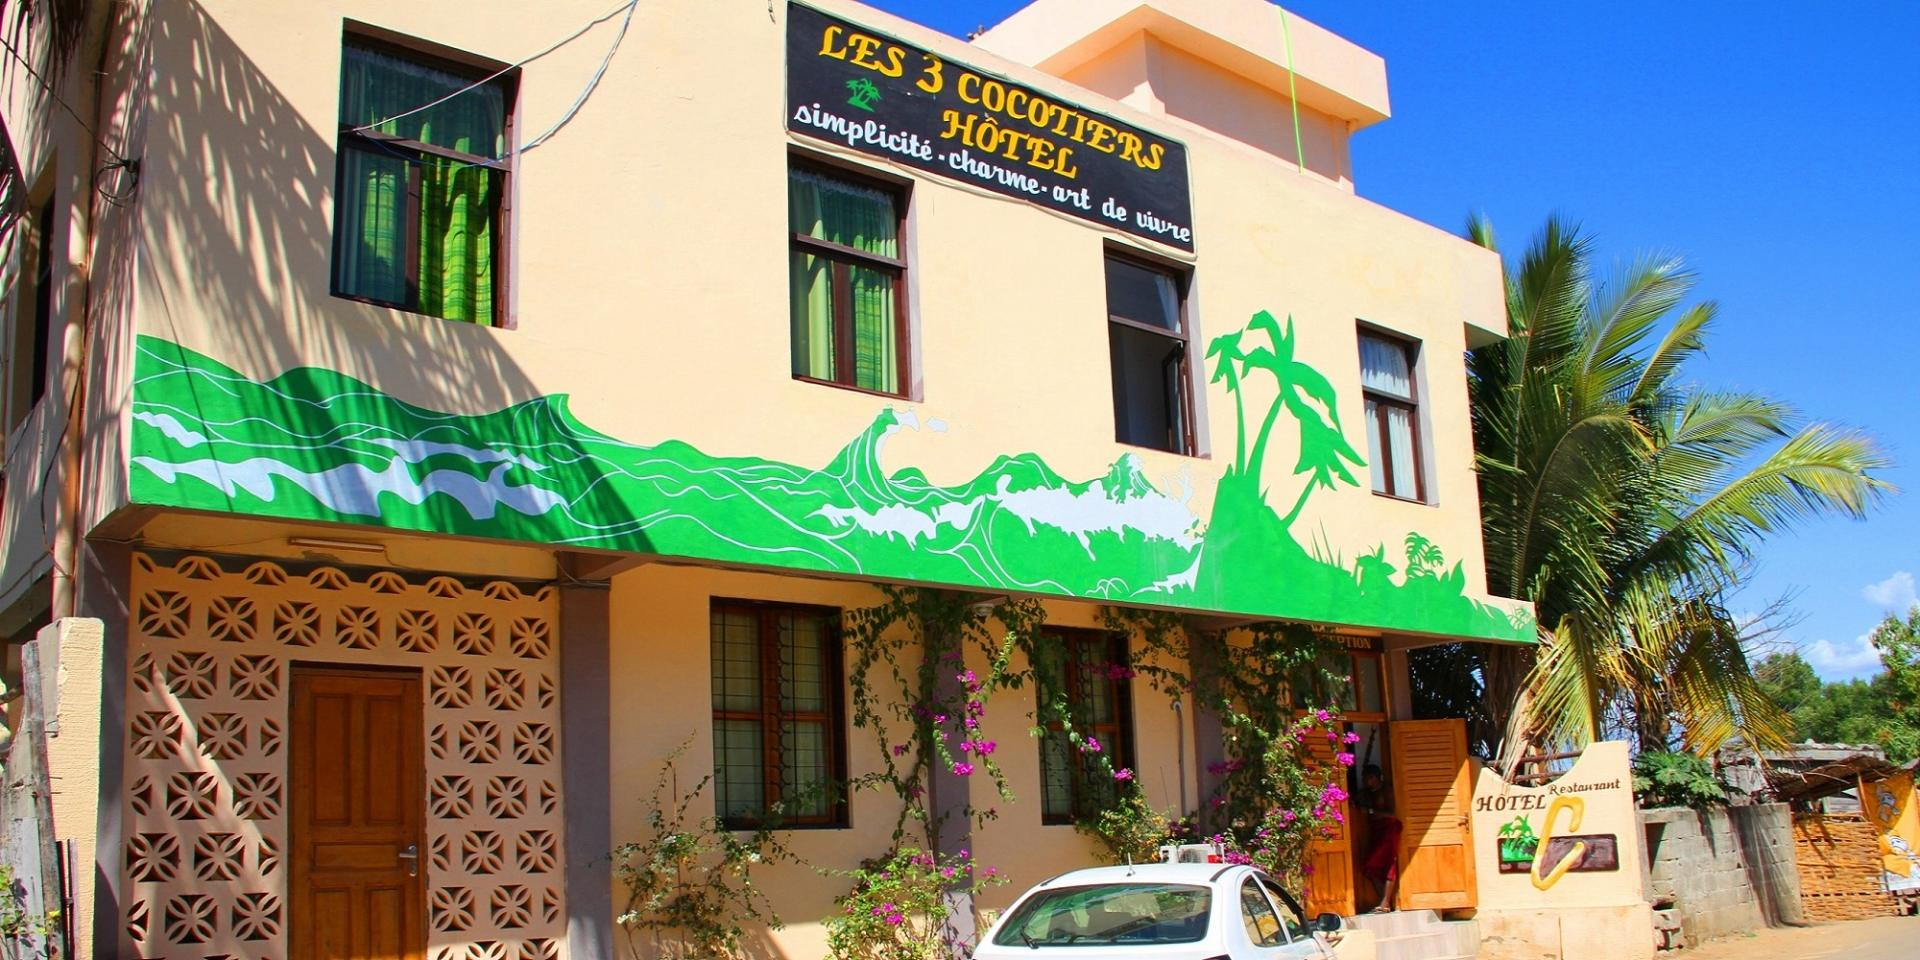 Hotel les 3 cocotiers 1